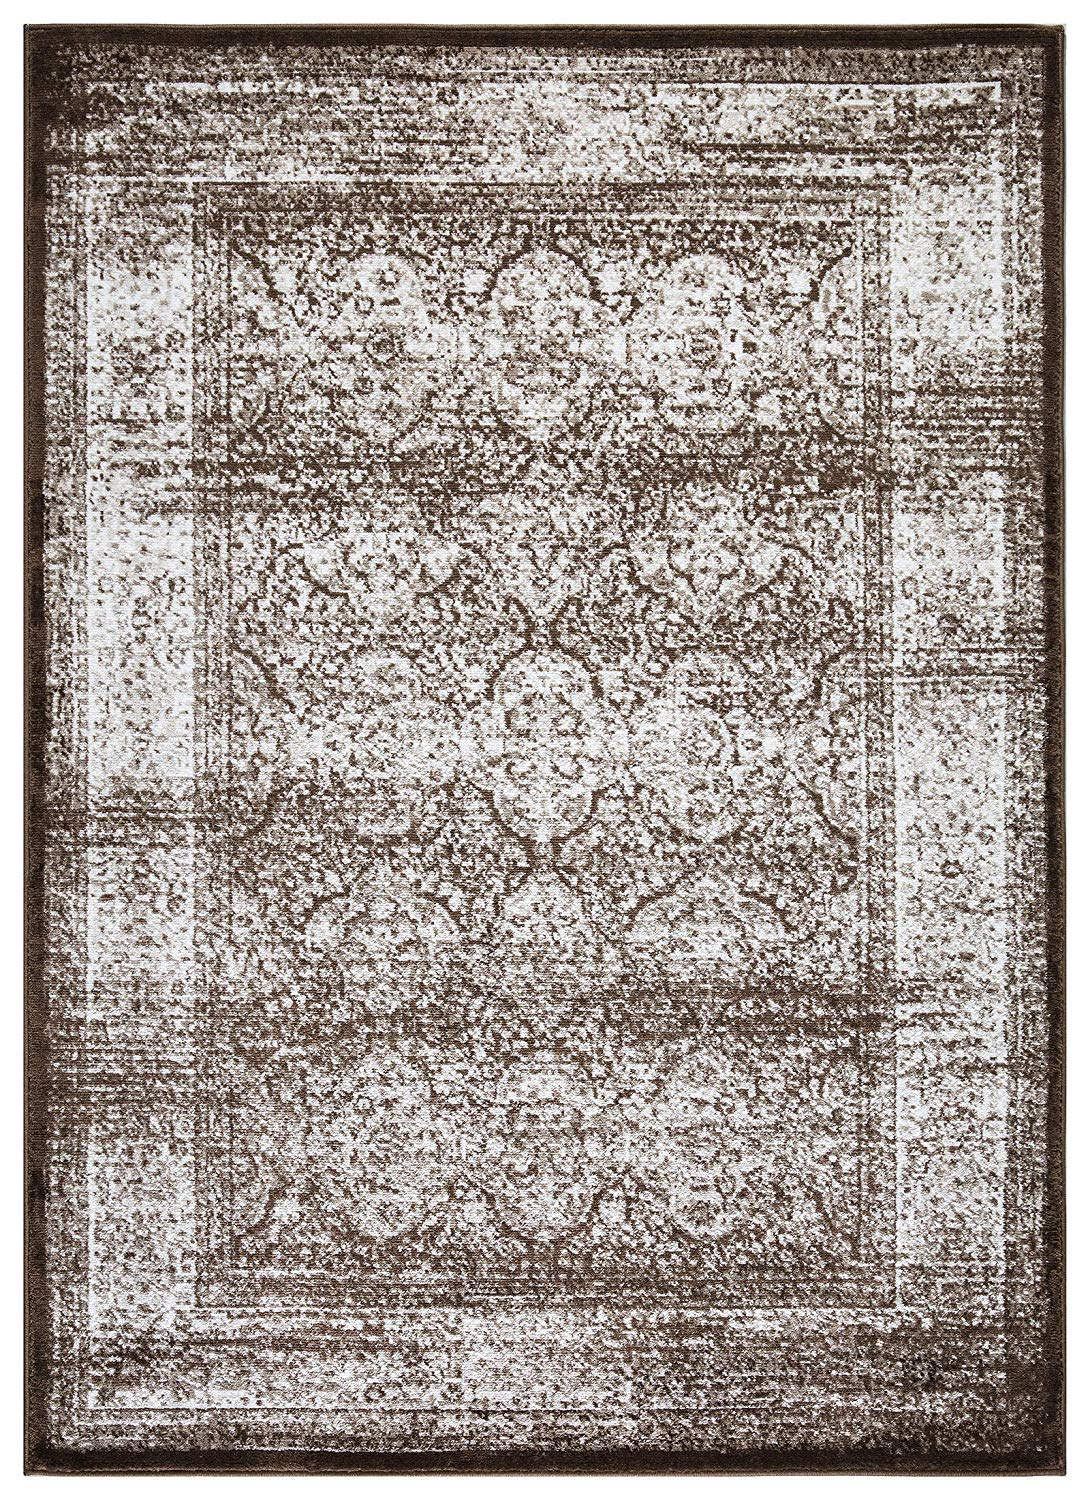 Regal 5x7 Vintage Oriental Medallion Area Rug 1174 In Bone - Weies Metallregal Good Regal Medallion Series Cclamp Traditional